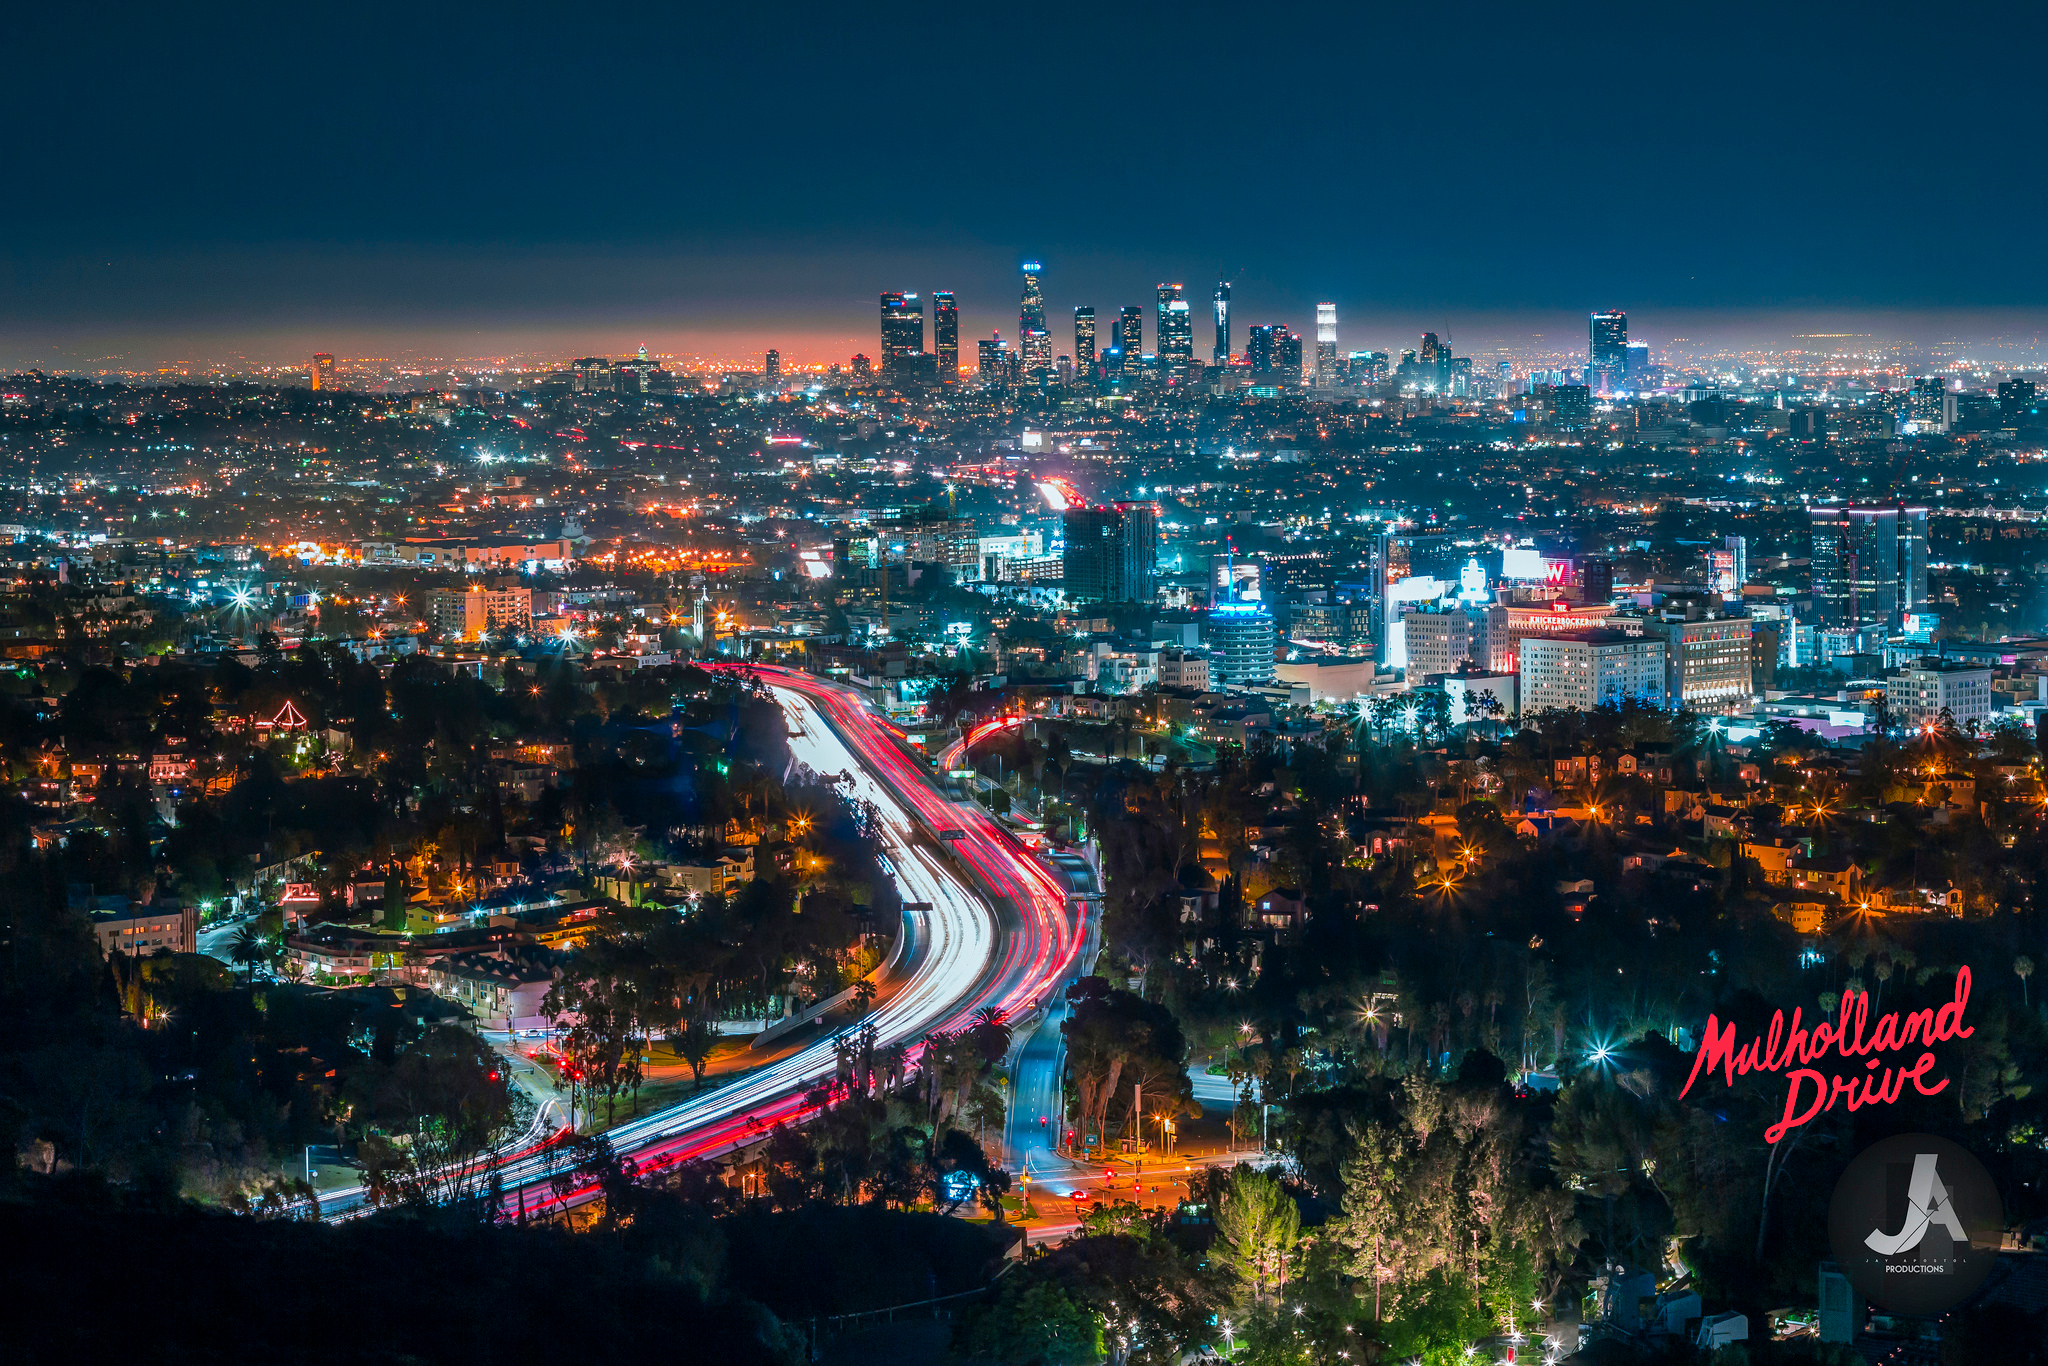 Los Angeles Hd Wallpaper Background Image 2048x1366 Id